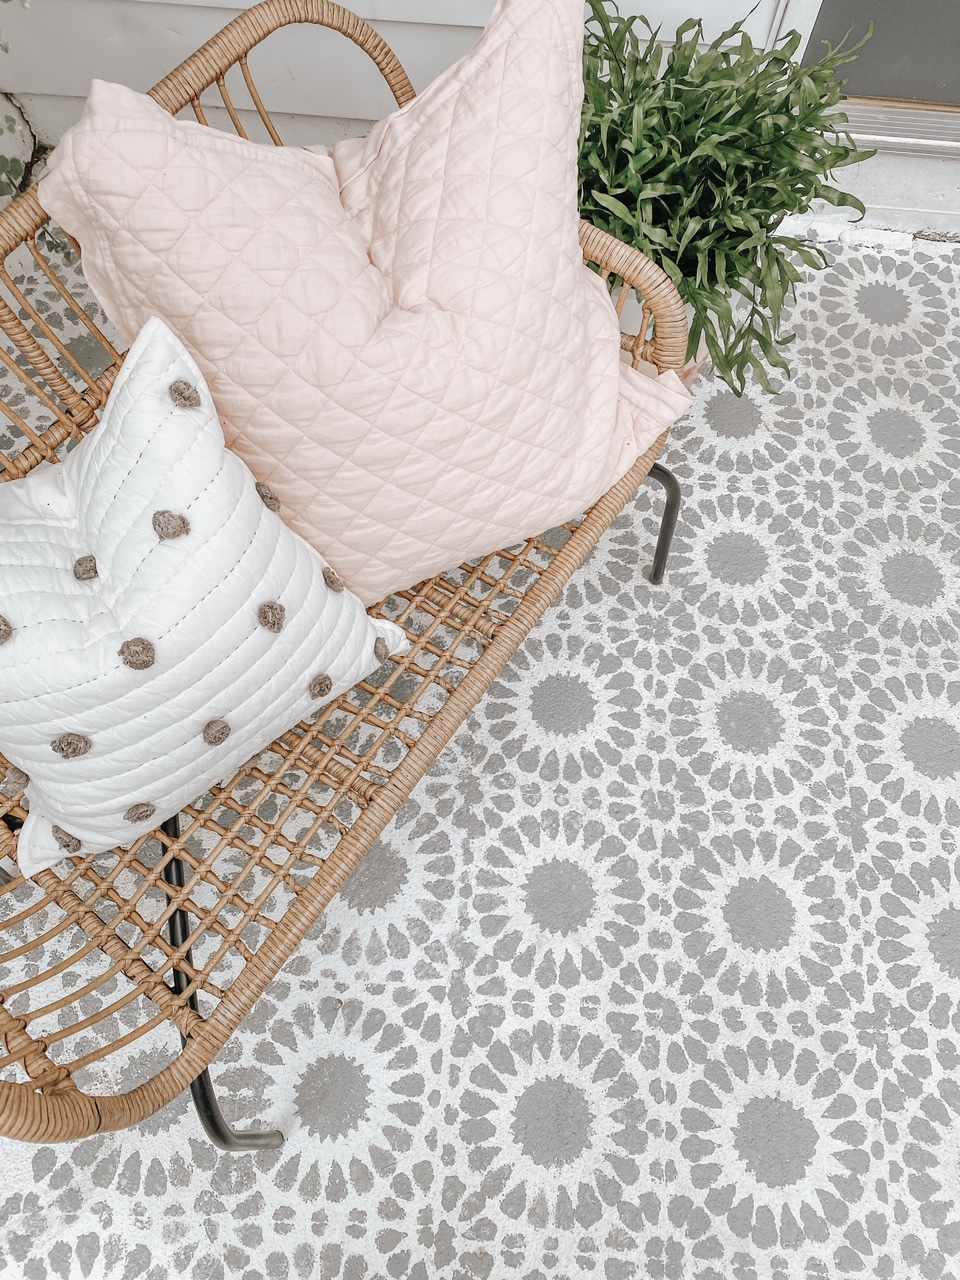 DIY Stenciled Porch